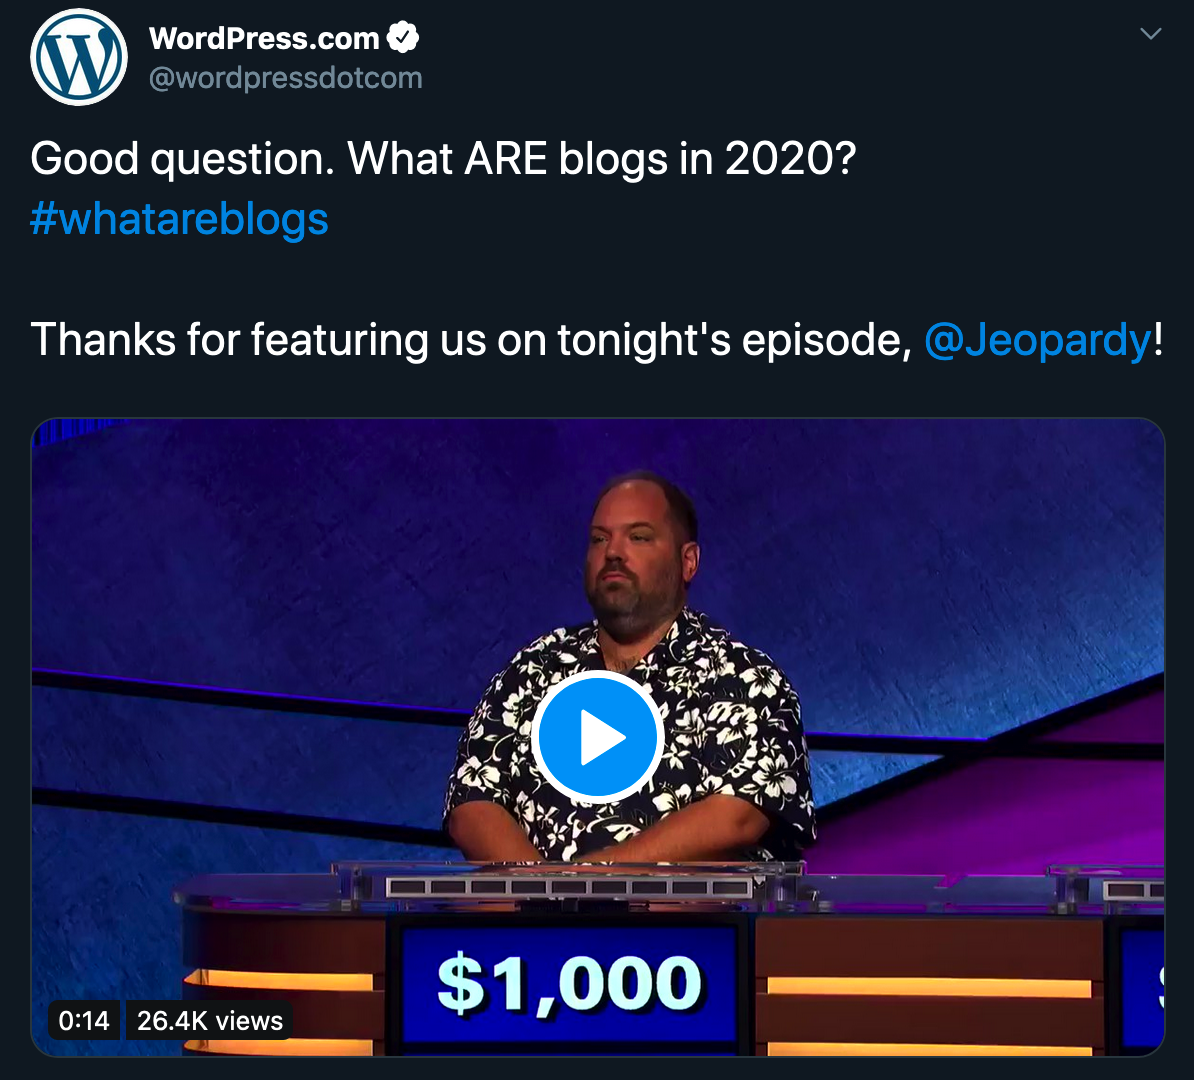 Tweet by @wordpressdotcom: Good question. What ARE blogs in 2020? #whatareblogs  Thanks for featuring us on tonight's episode, @Jeopardy!